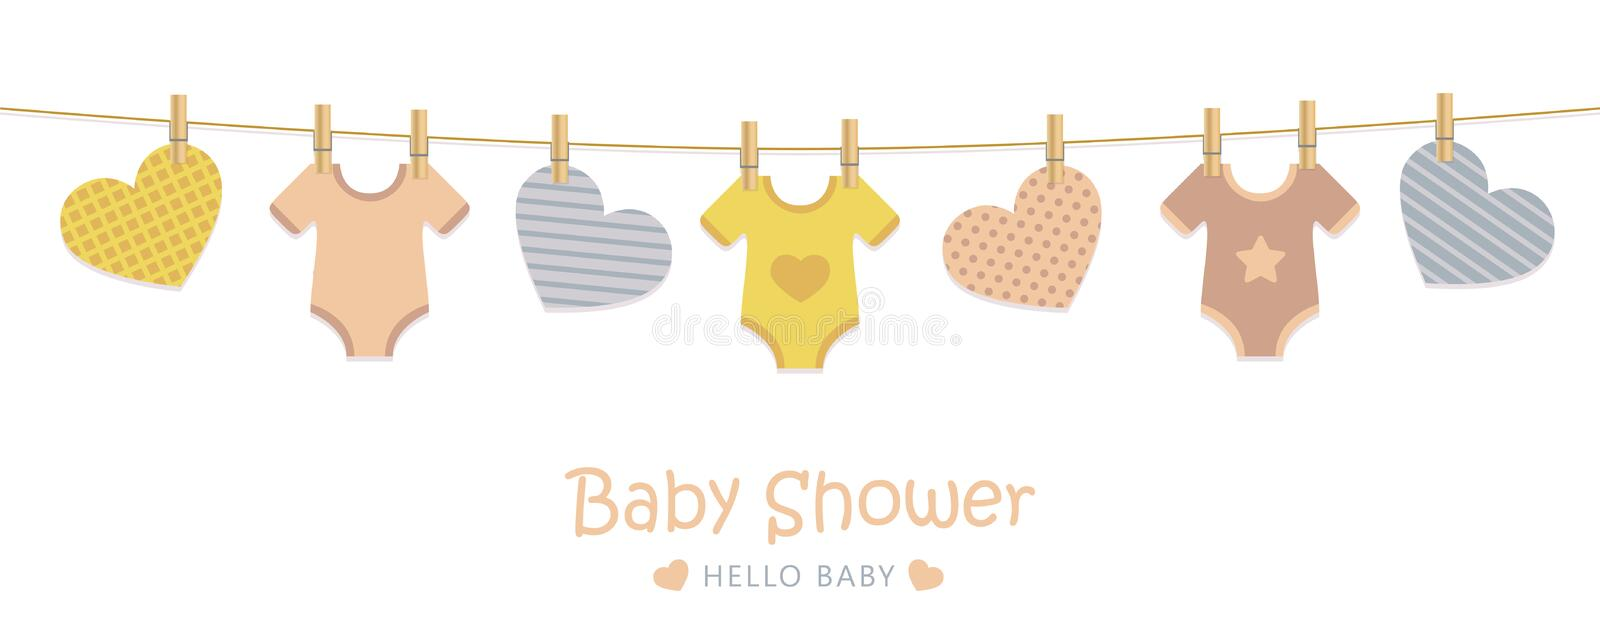 Baby shower welcome greeting card for childbirth with hanging hearts and bodysuits. Vector illustration EPS10 stock illustration